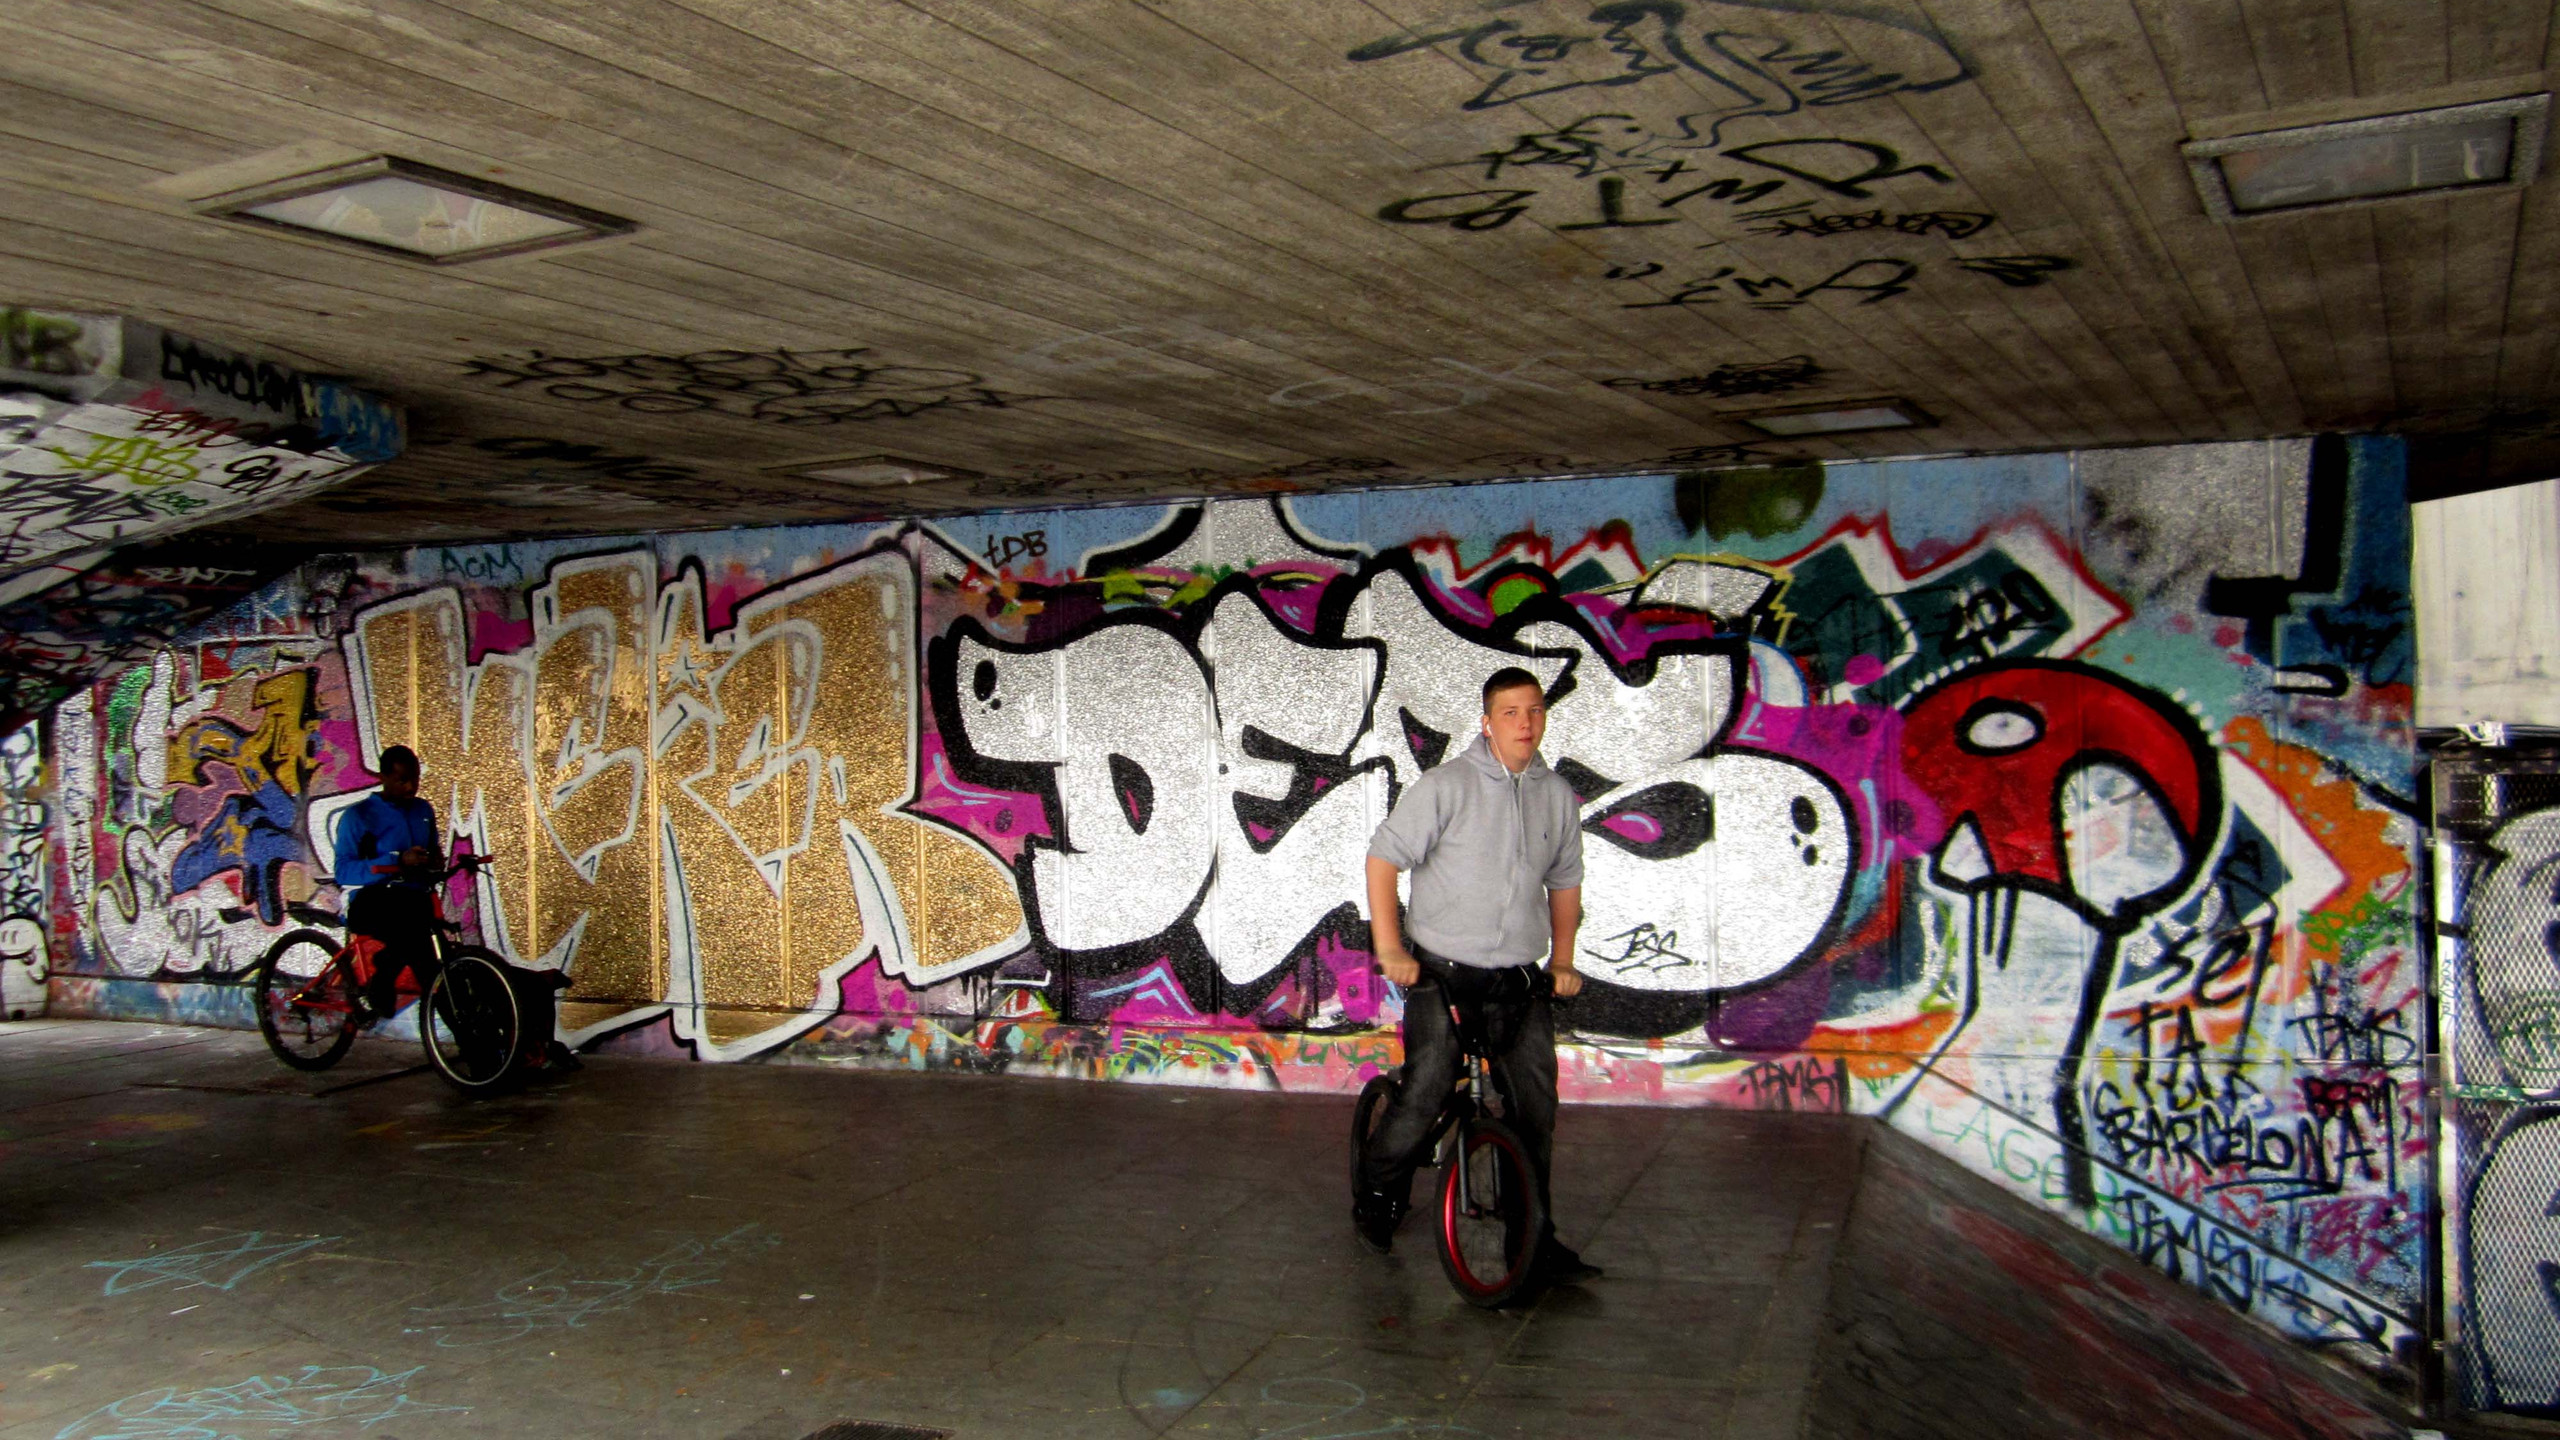 Cyclists in the Undercroft